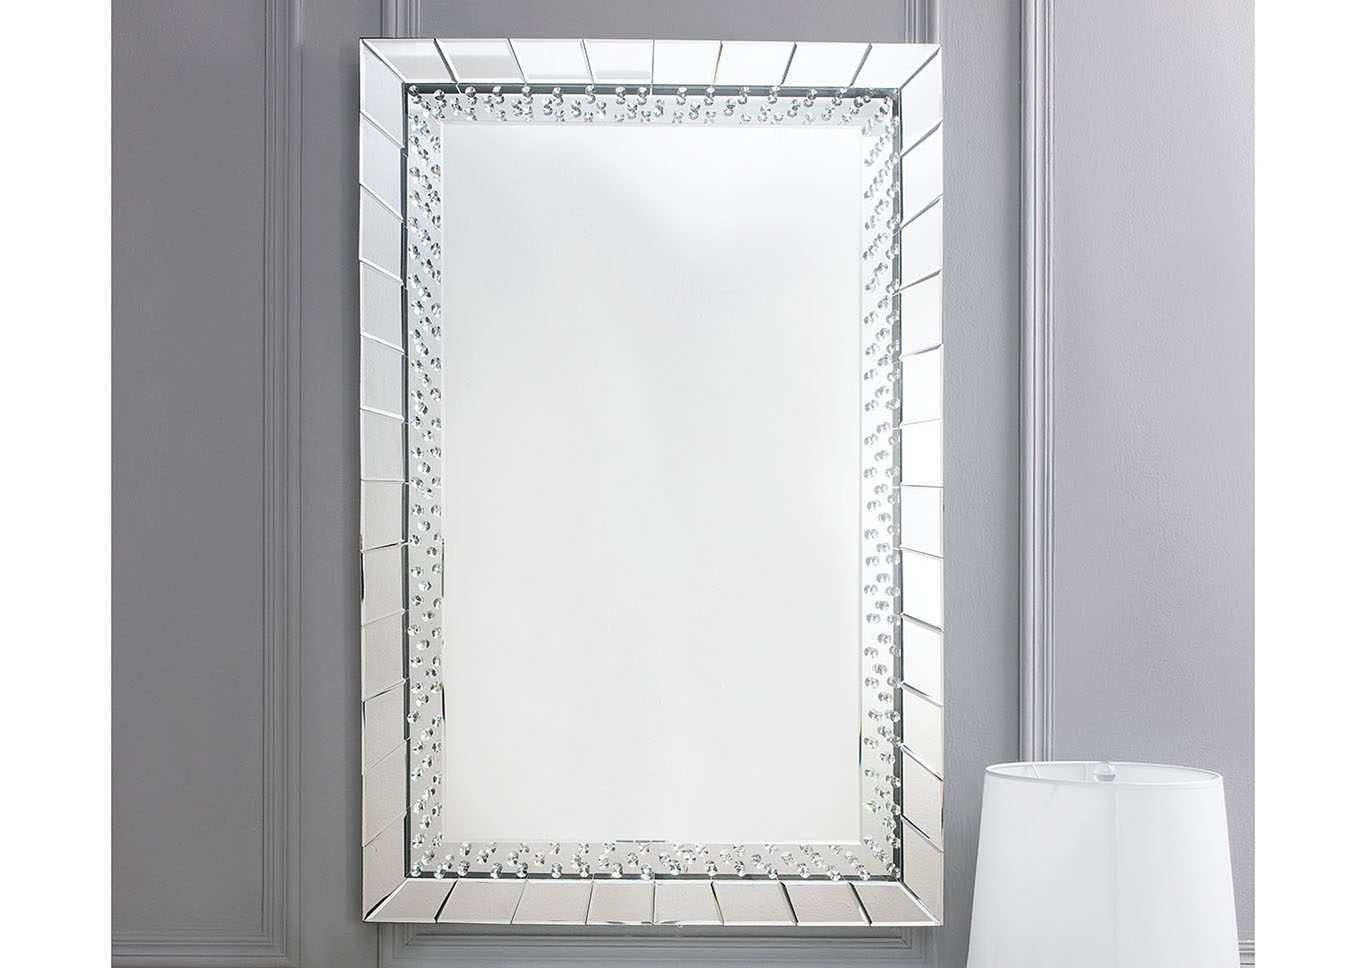 Just Furniture Nysa Mirror Tile Frame Accent Mirror Inside Silver Frame Accent Mirrors (View 10 of 20)